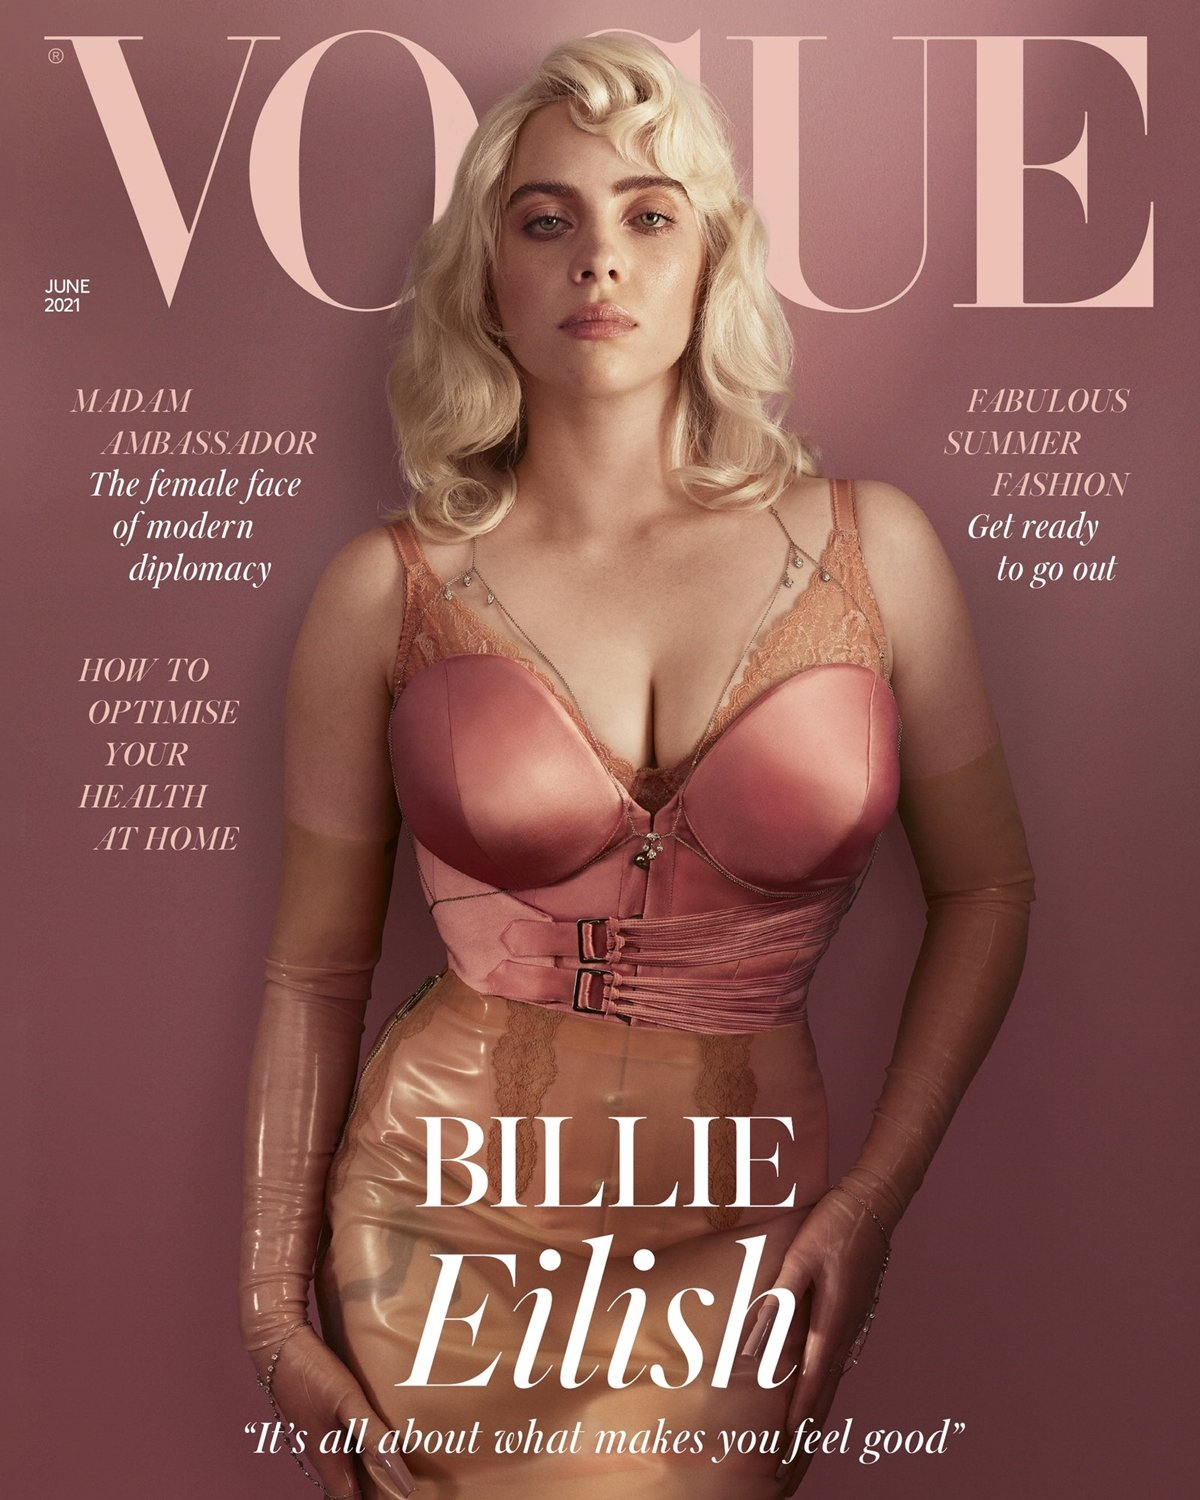 Billie Eilish shocked fans by dressing up like a pin-up girl for British Vogue's June issue in 2021